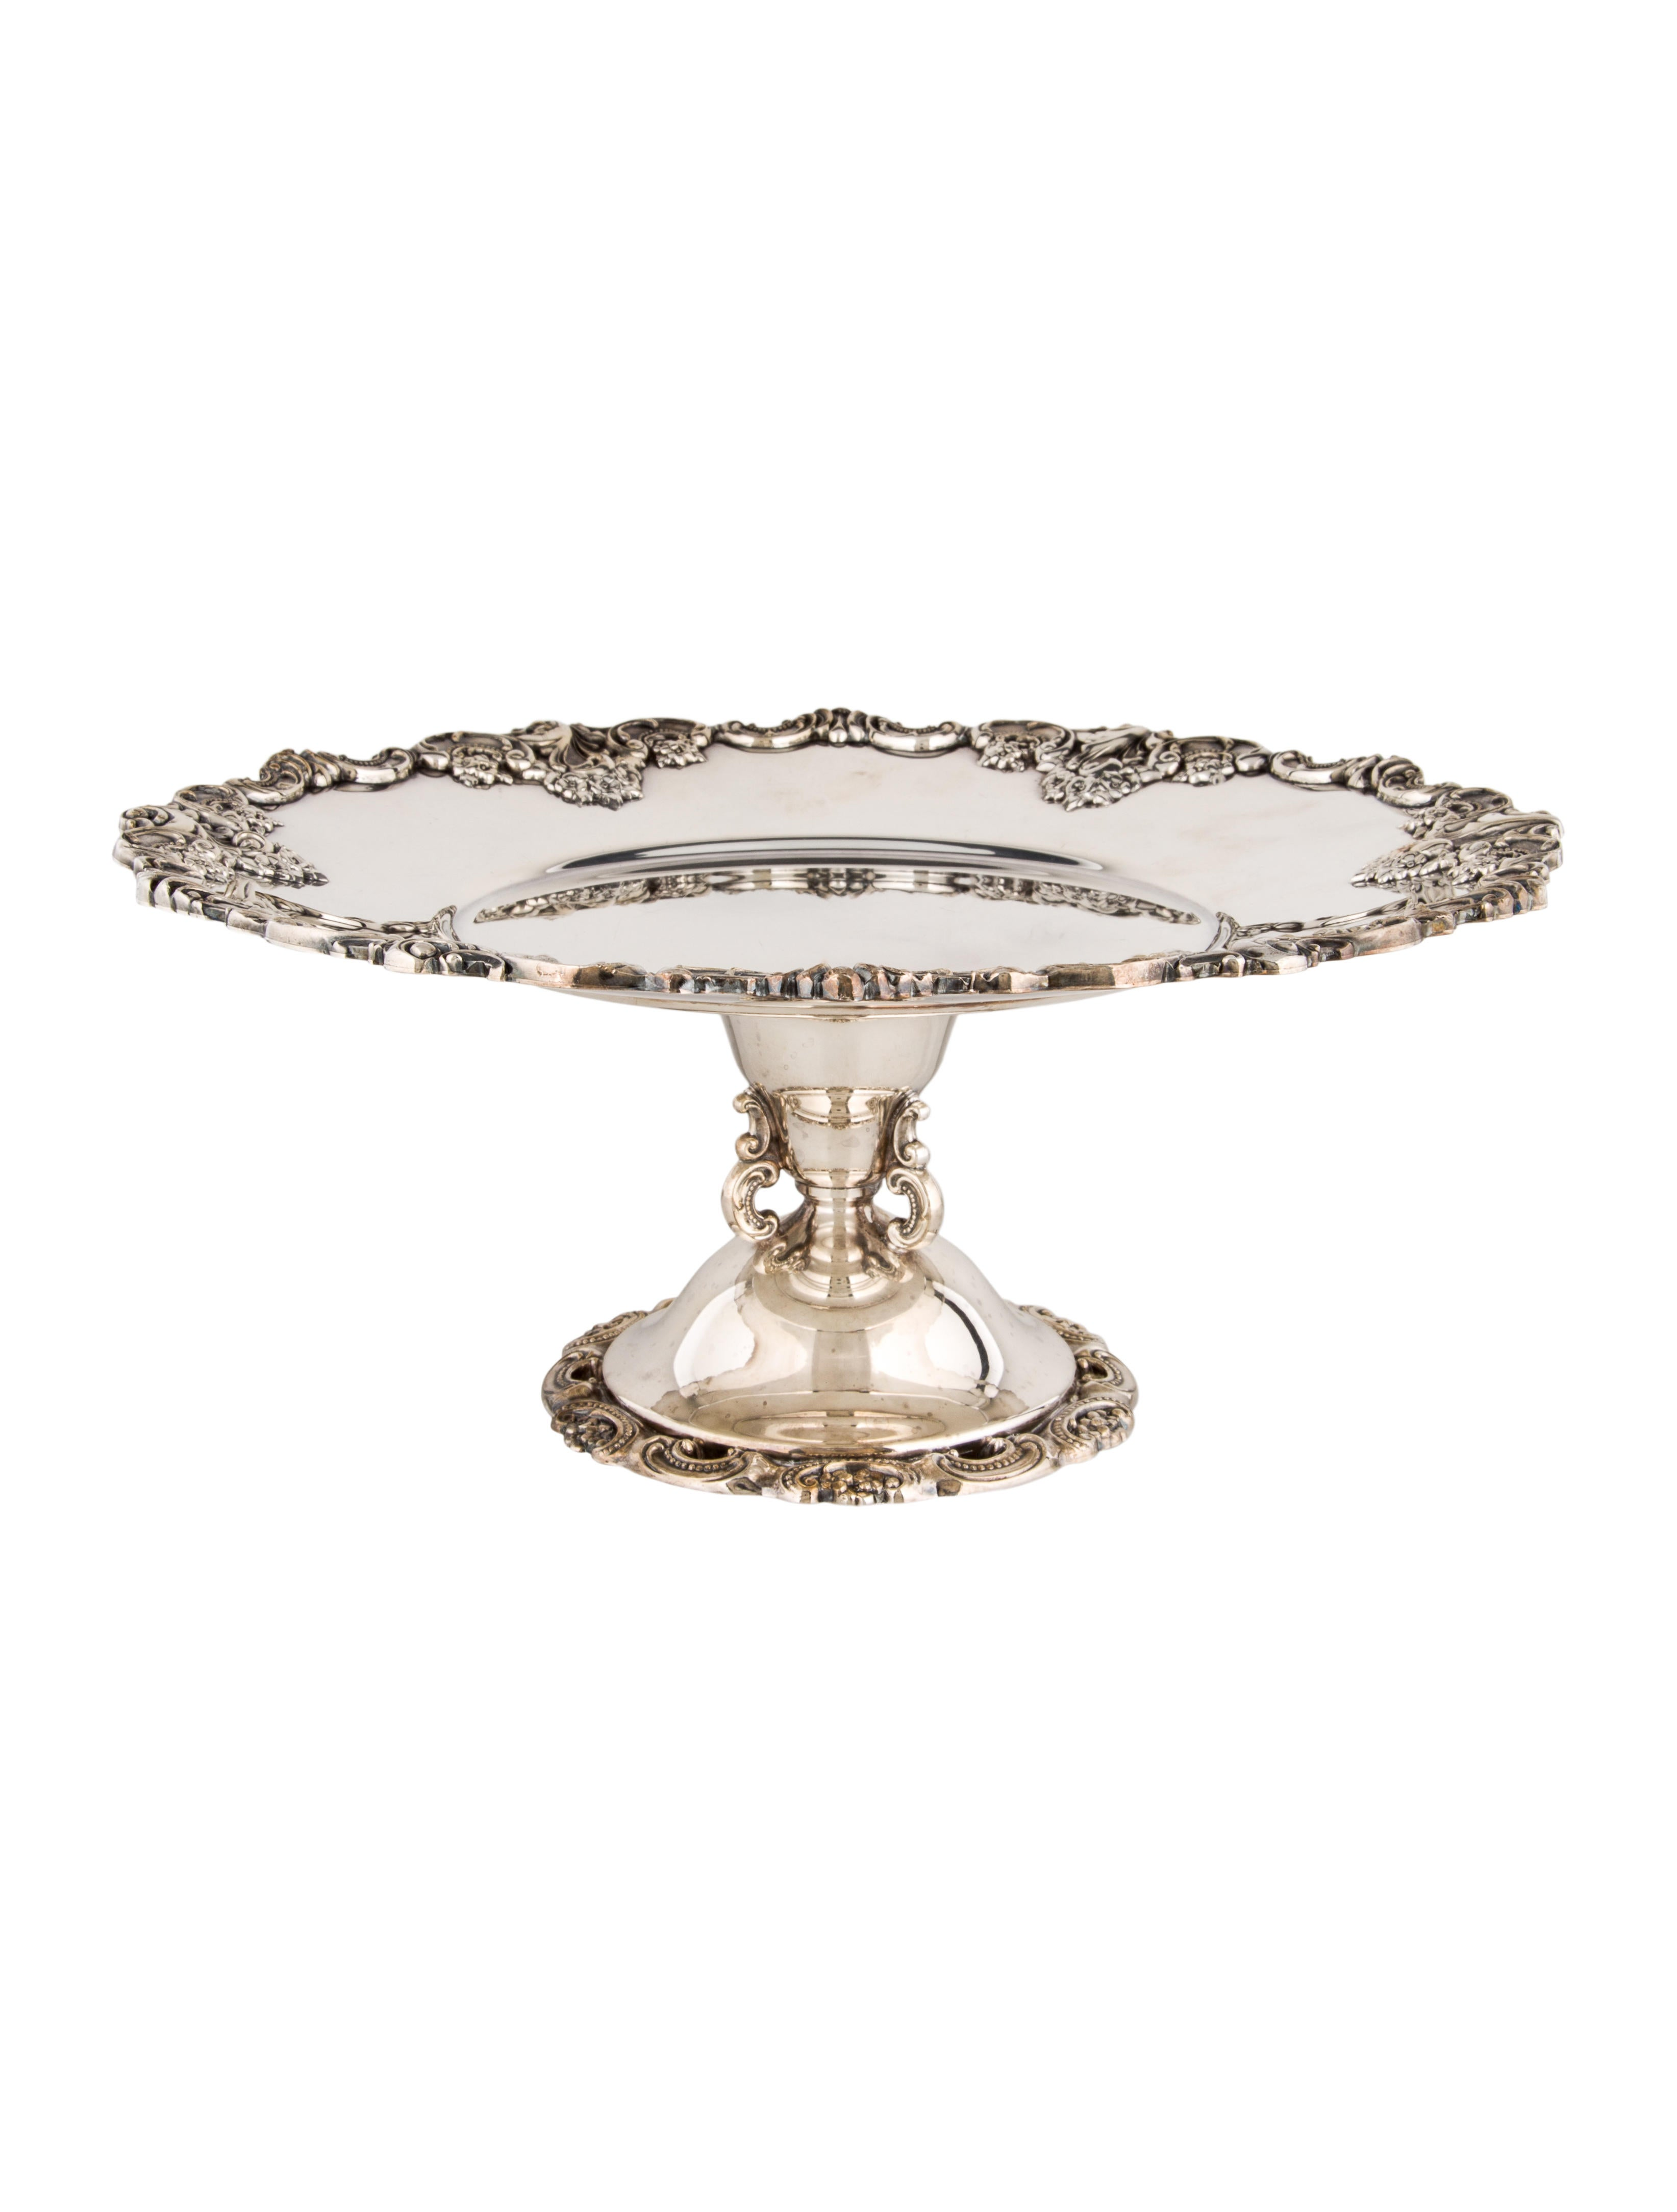 Wallace Baroque Silverplate Cake Stand Tabletop And Kitchen